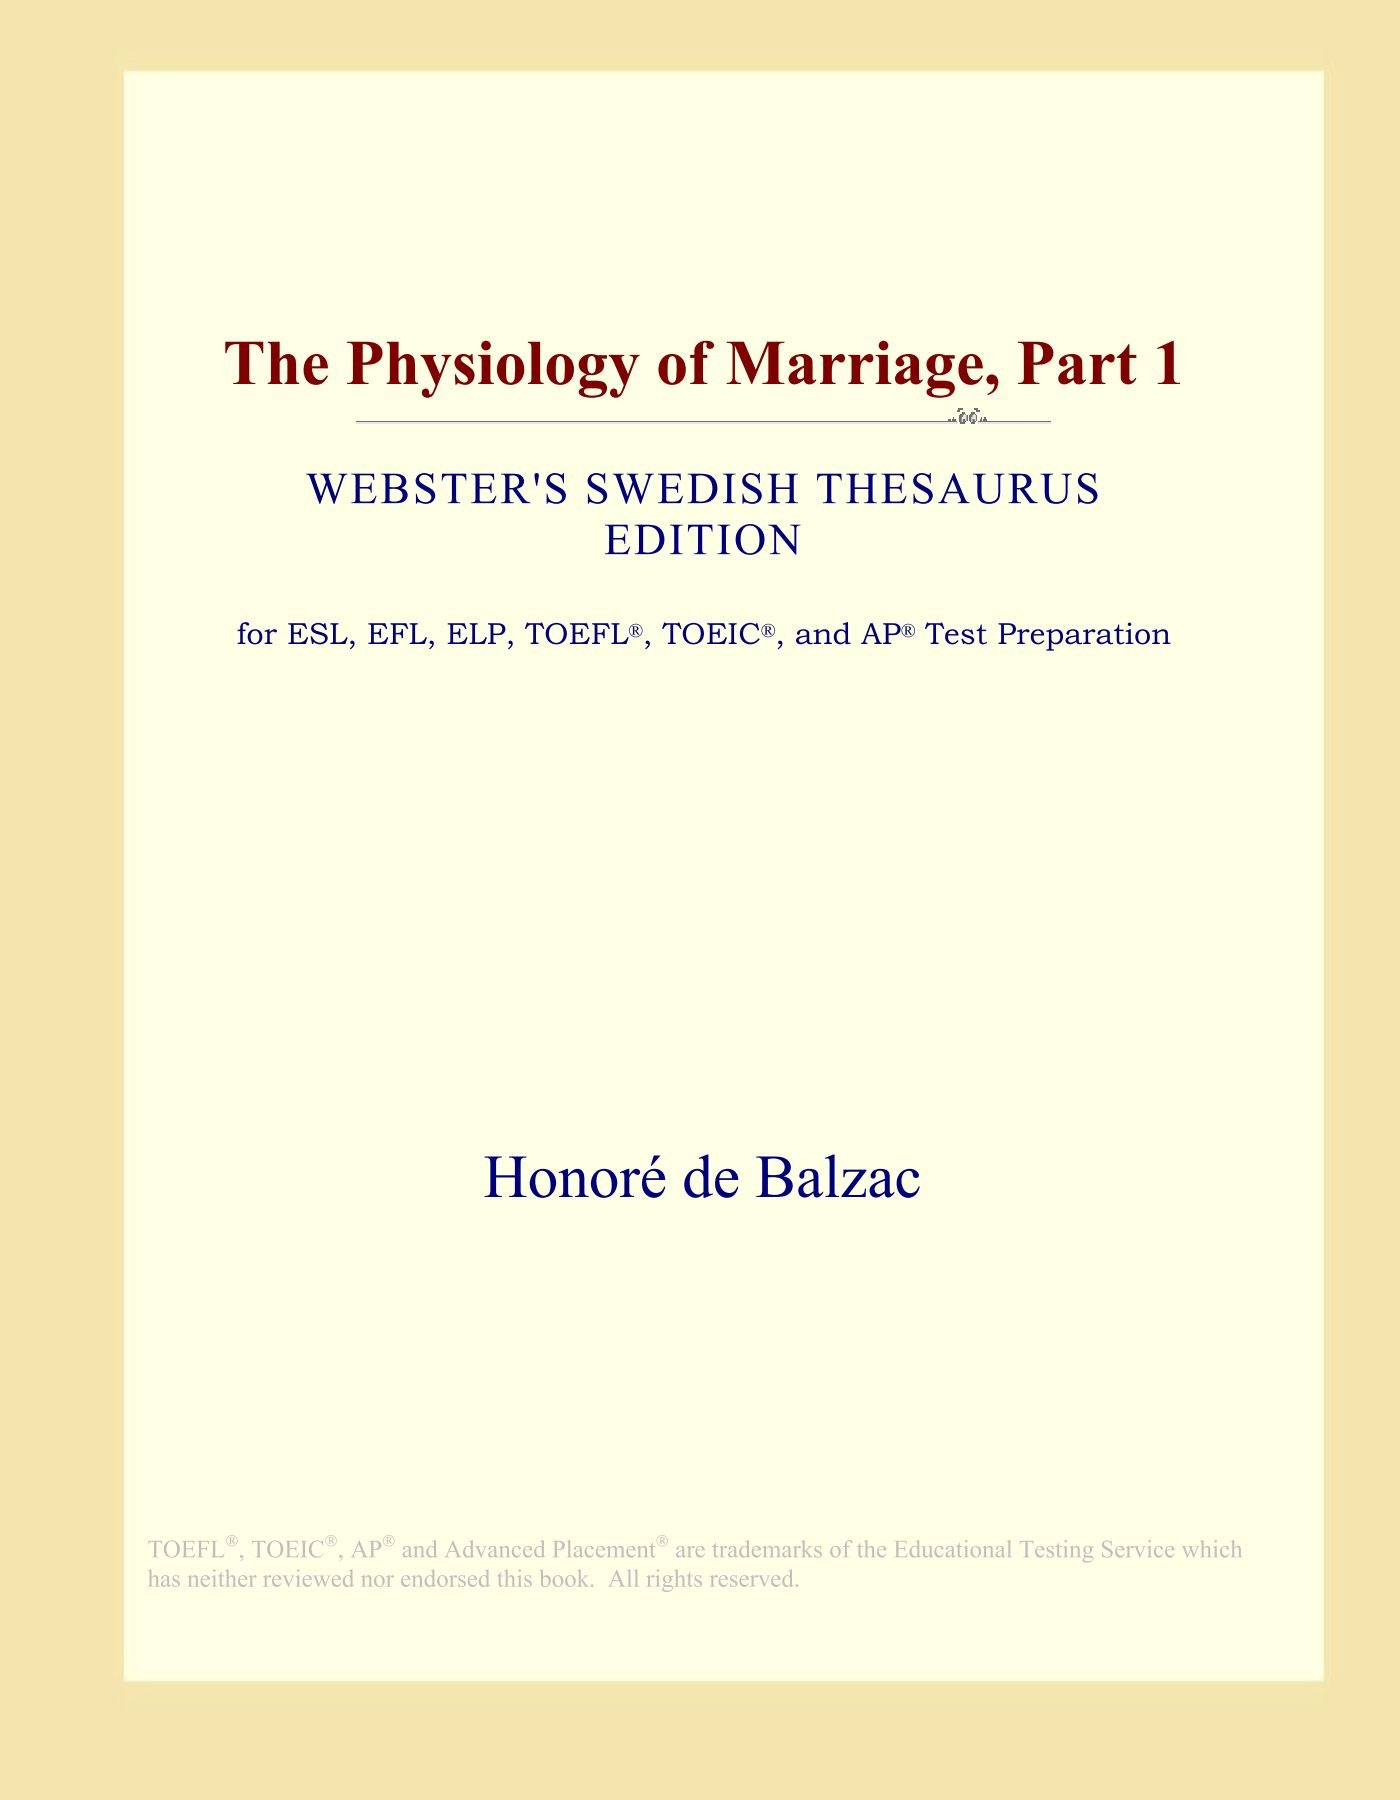 The Physiology of Marriage, Part 1 (Webster's Swedish Thesaurus Edition) pdf epub